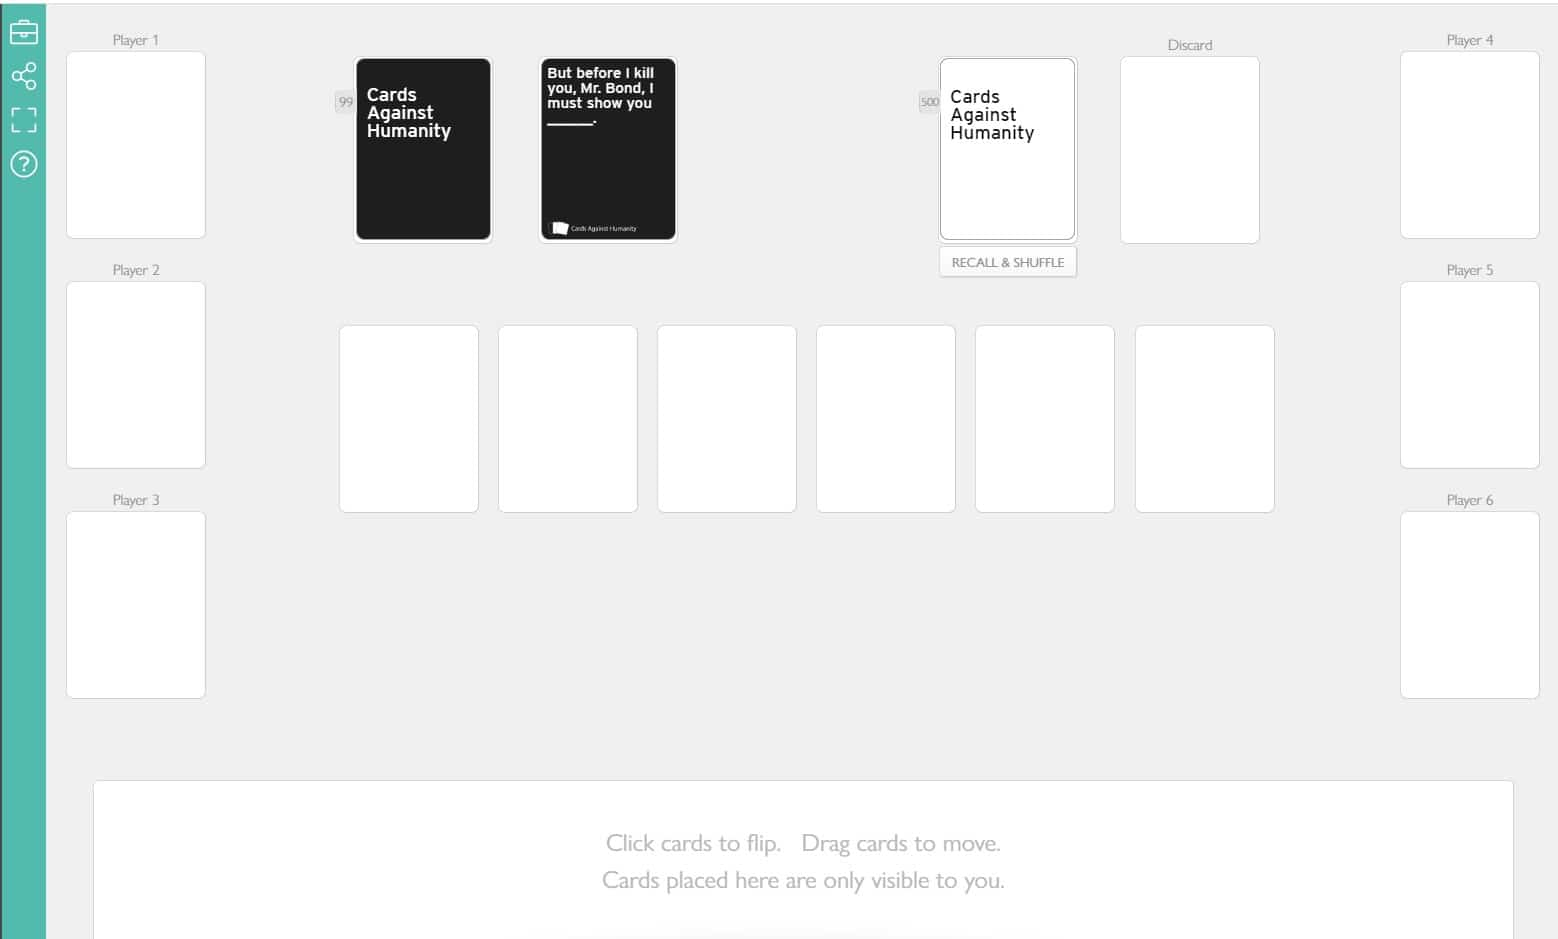 ISO Activities: Play Cards Against Humanity Online